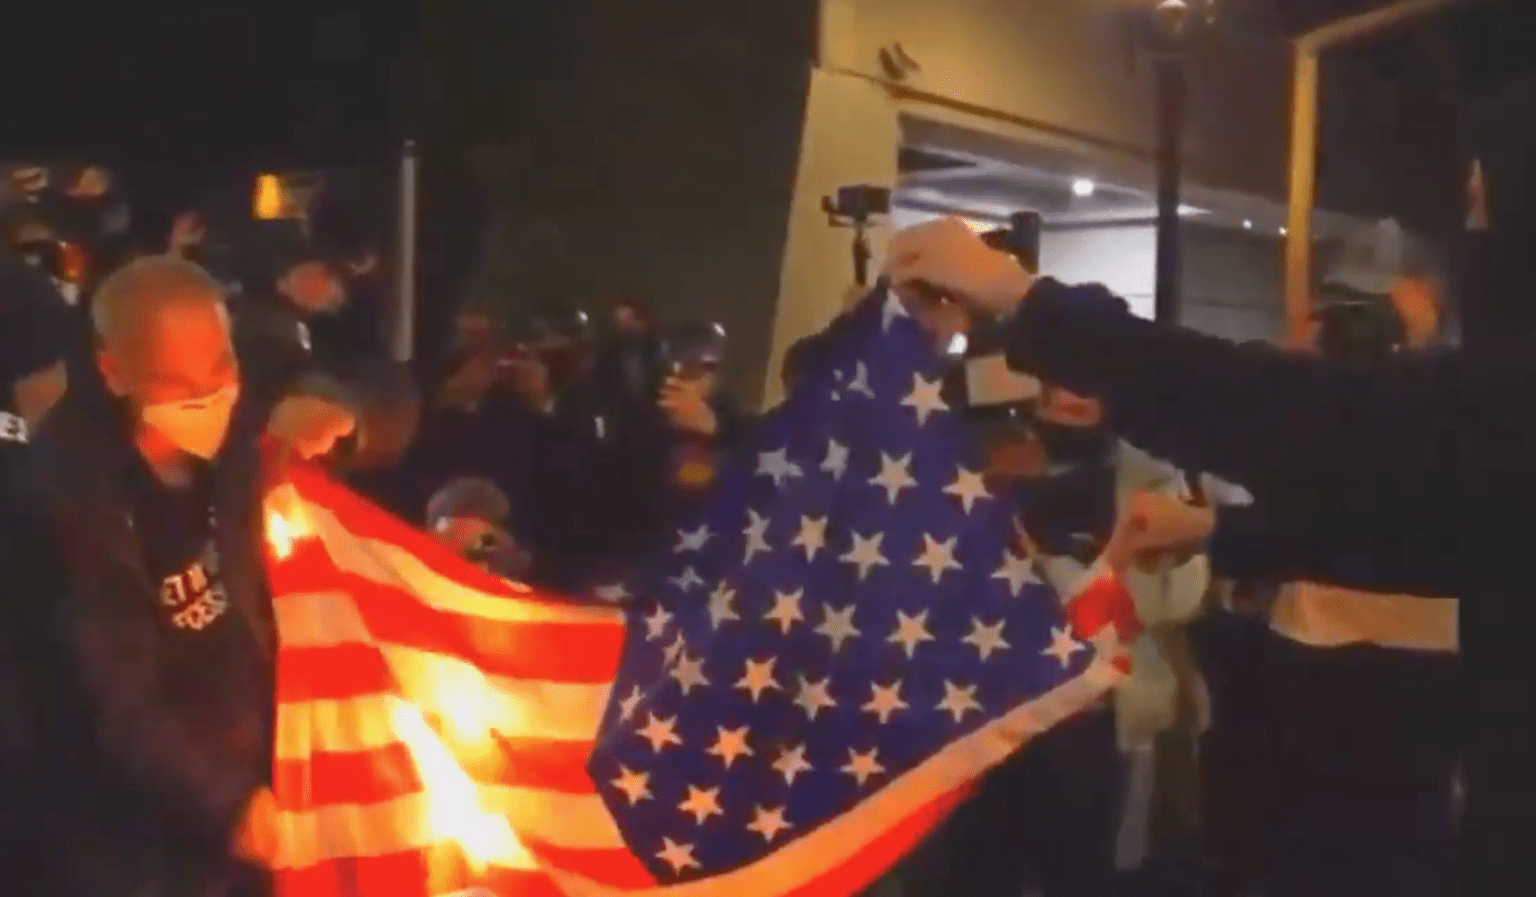 Portland: Far left rioters torch American flag, attack police with rocks, bricks and fireworks